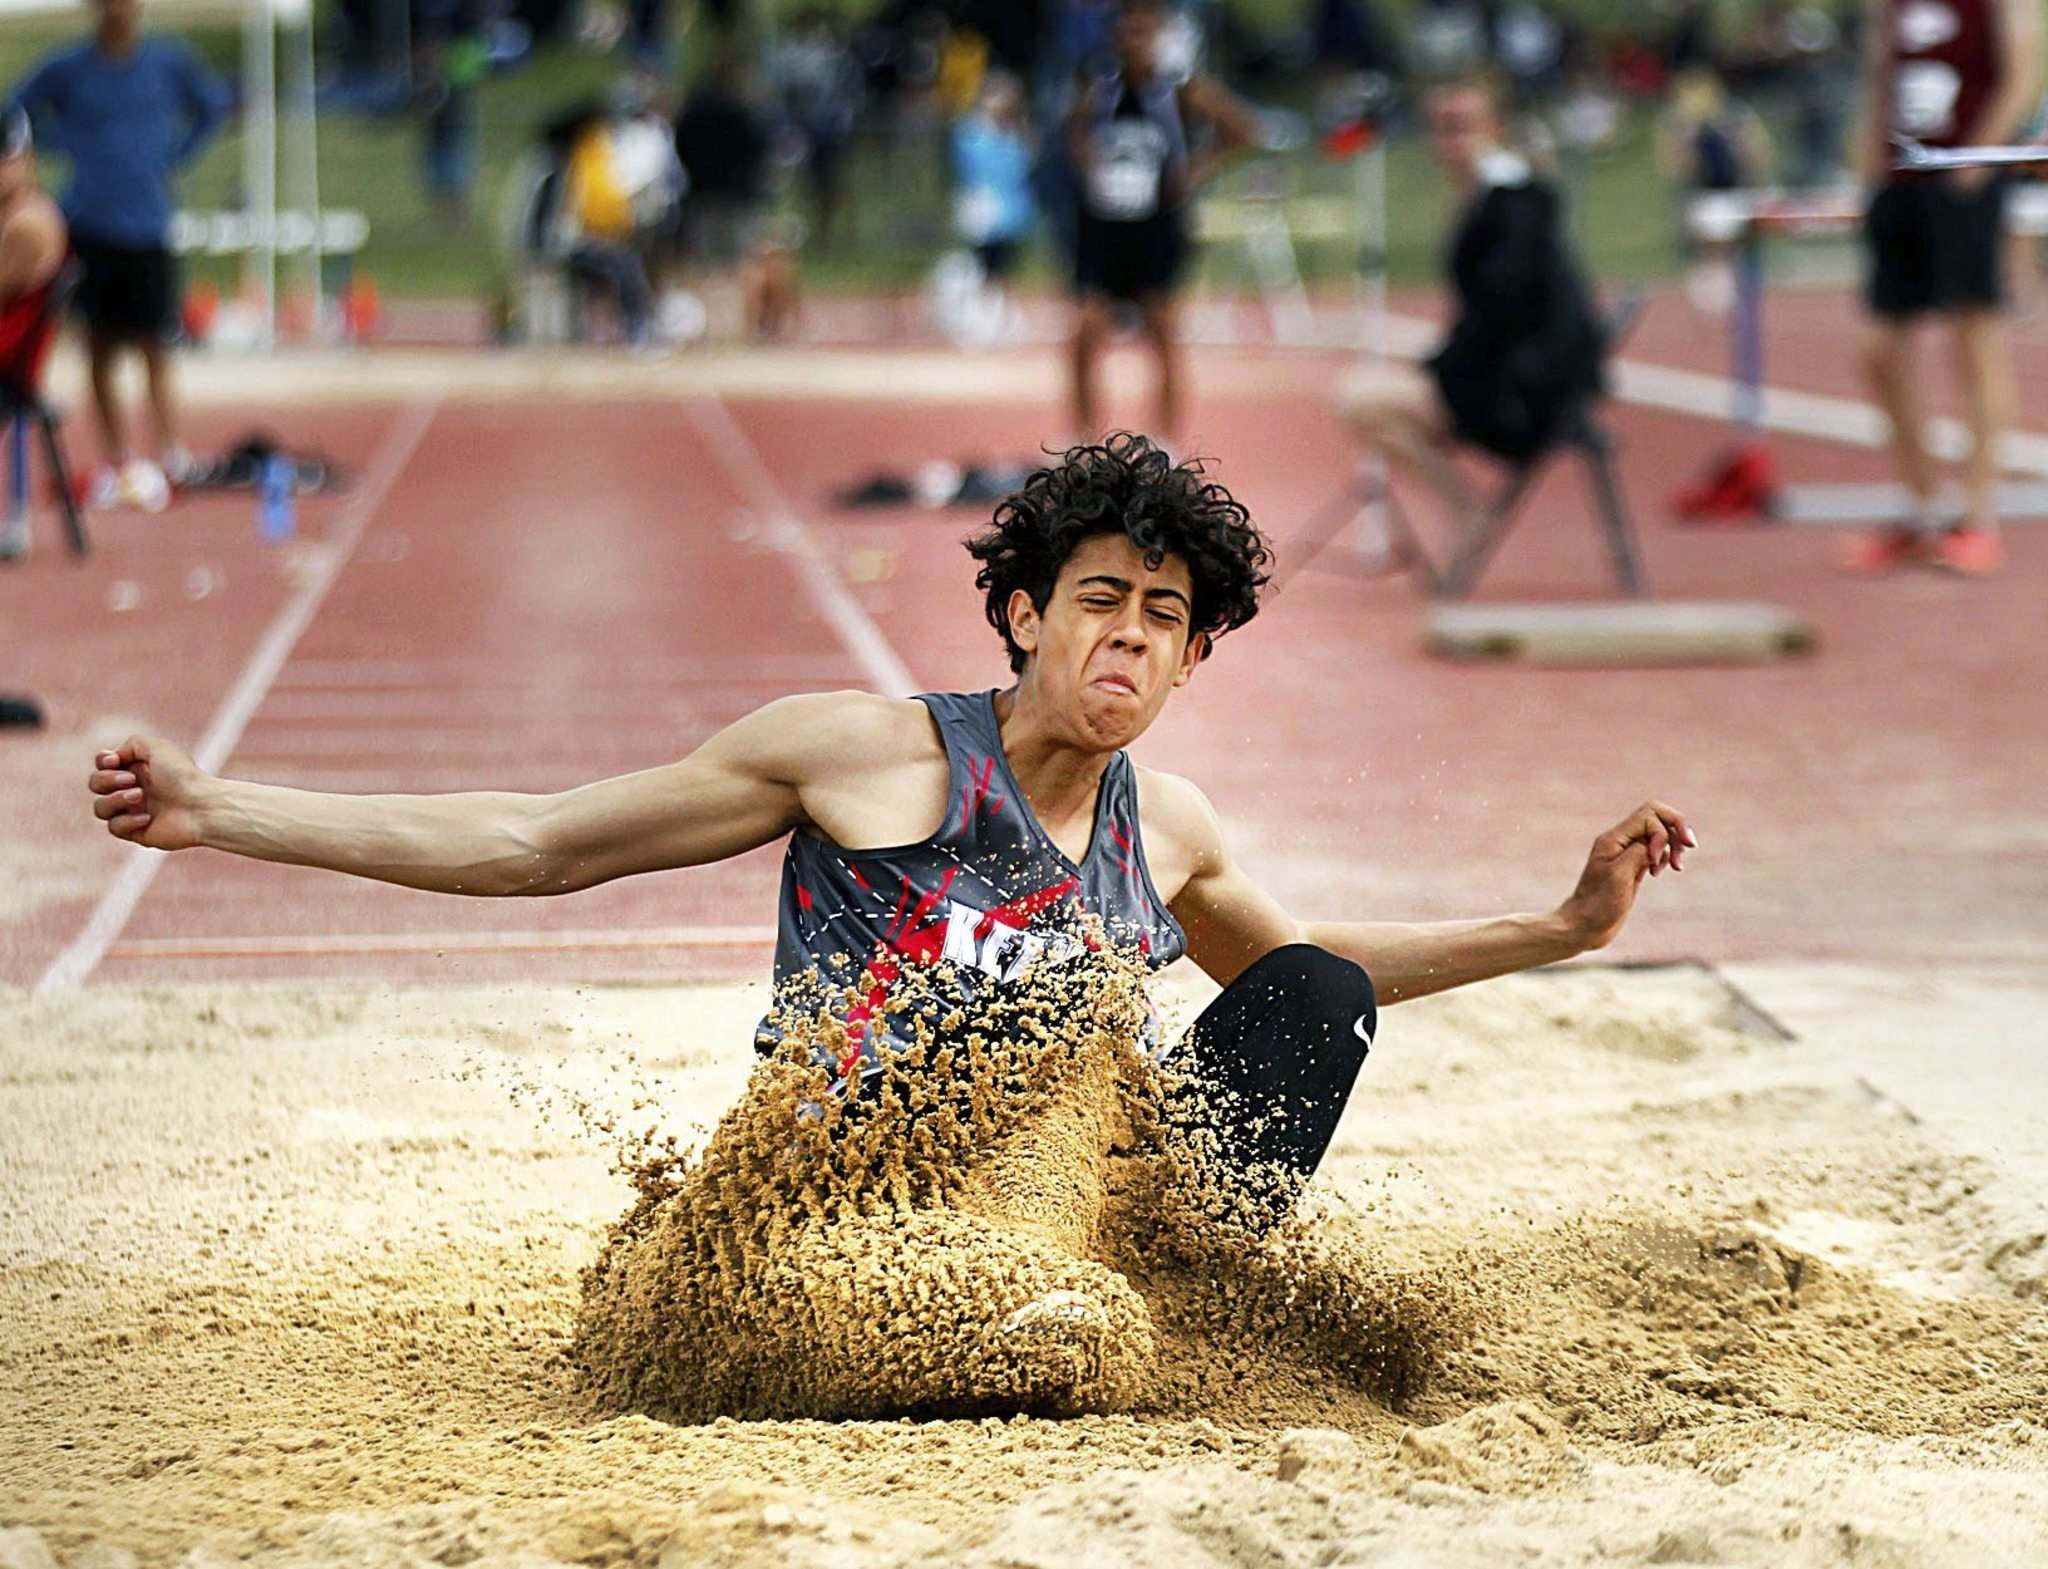 PHIL HOSSACK / WINNIPEG FREE PRESS</p><p>Kelvin Collegiate's decathlete Robin Brooks lands a long jump in competition Saturday afternoon.</p>